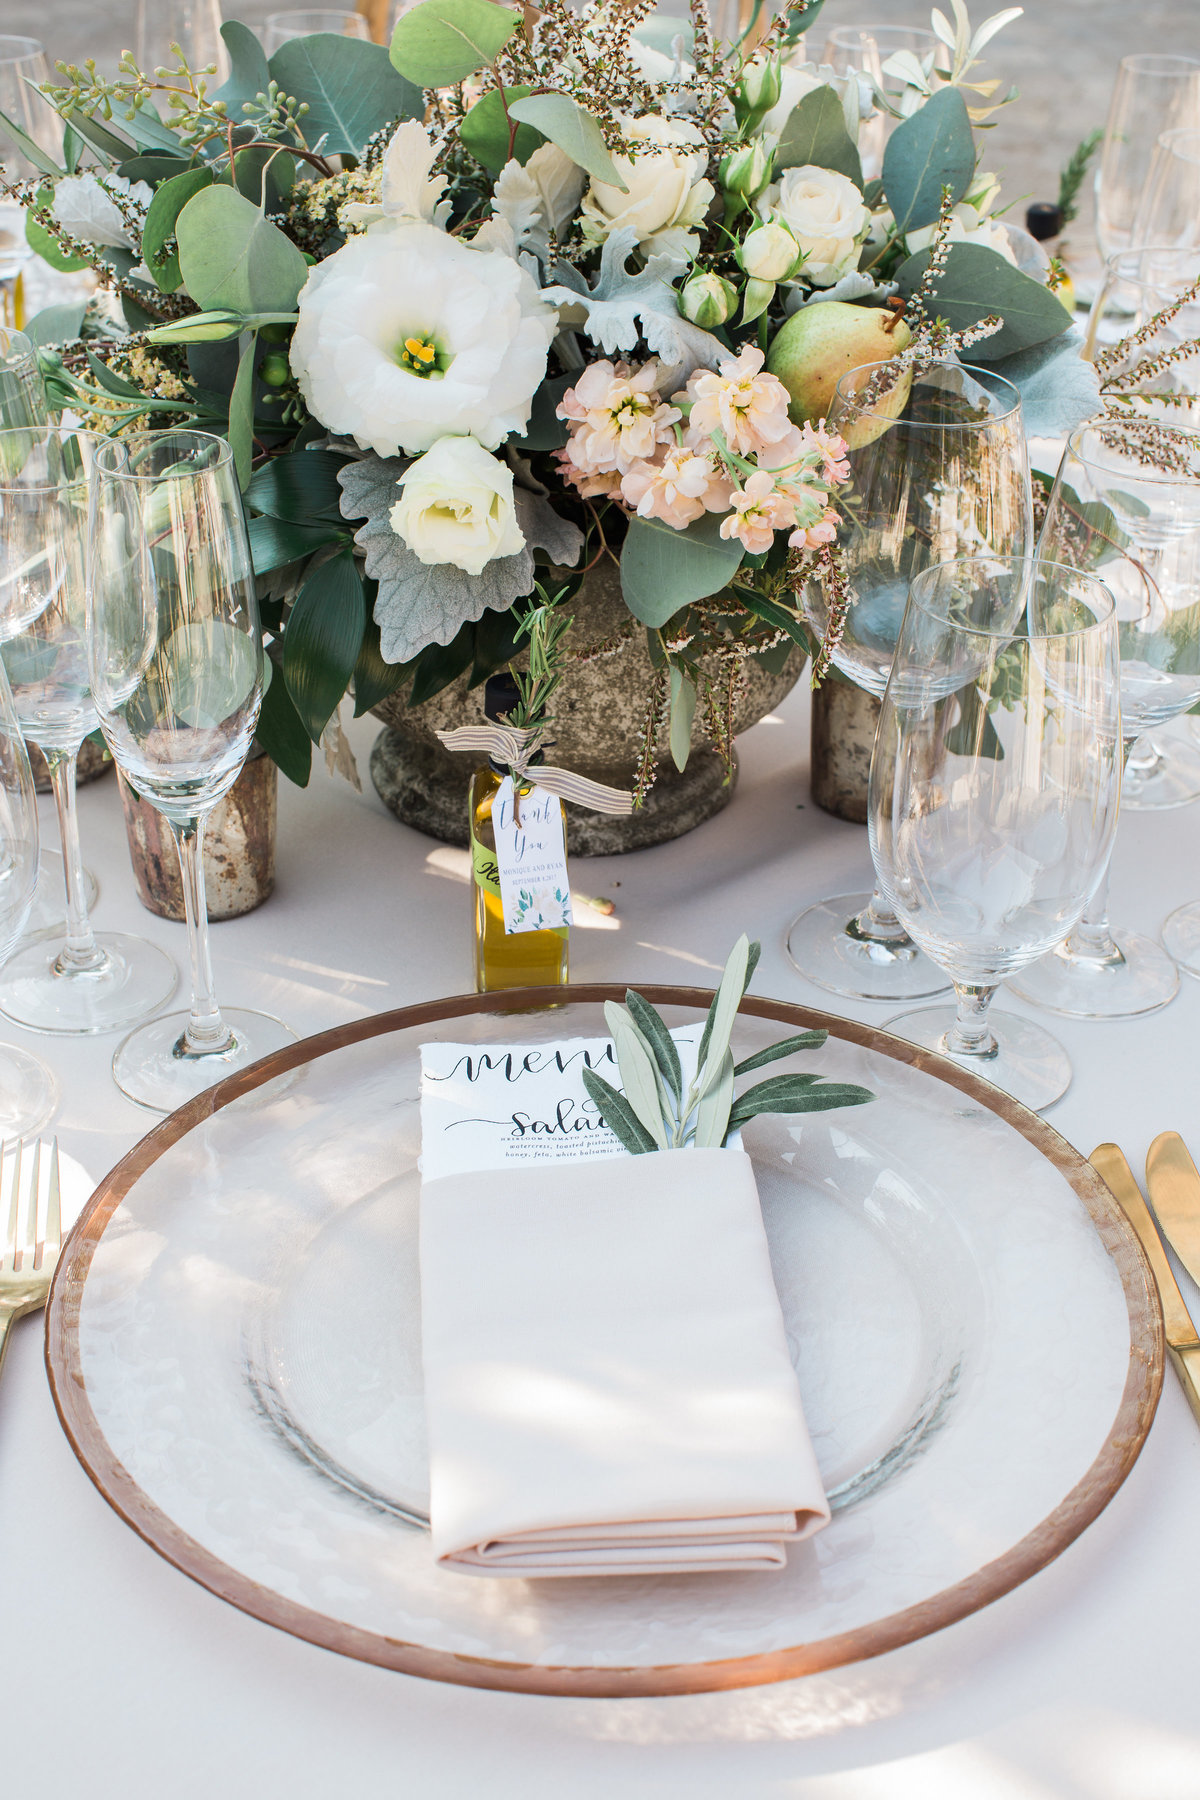 Natalie Bray Studios, Natalie Bray Photography, Southern California Wedding Photographer, Fine Art wedding, Destination Wedding Photographer, Sonoma Wedding Photographer-3